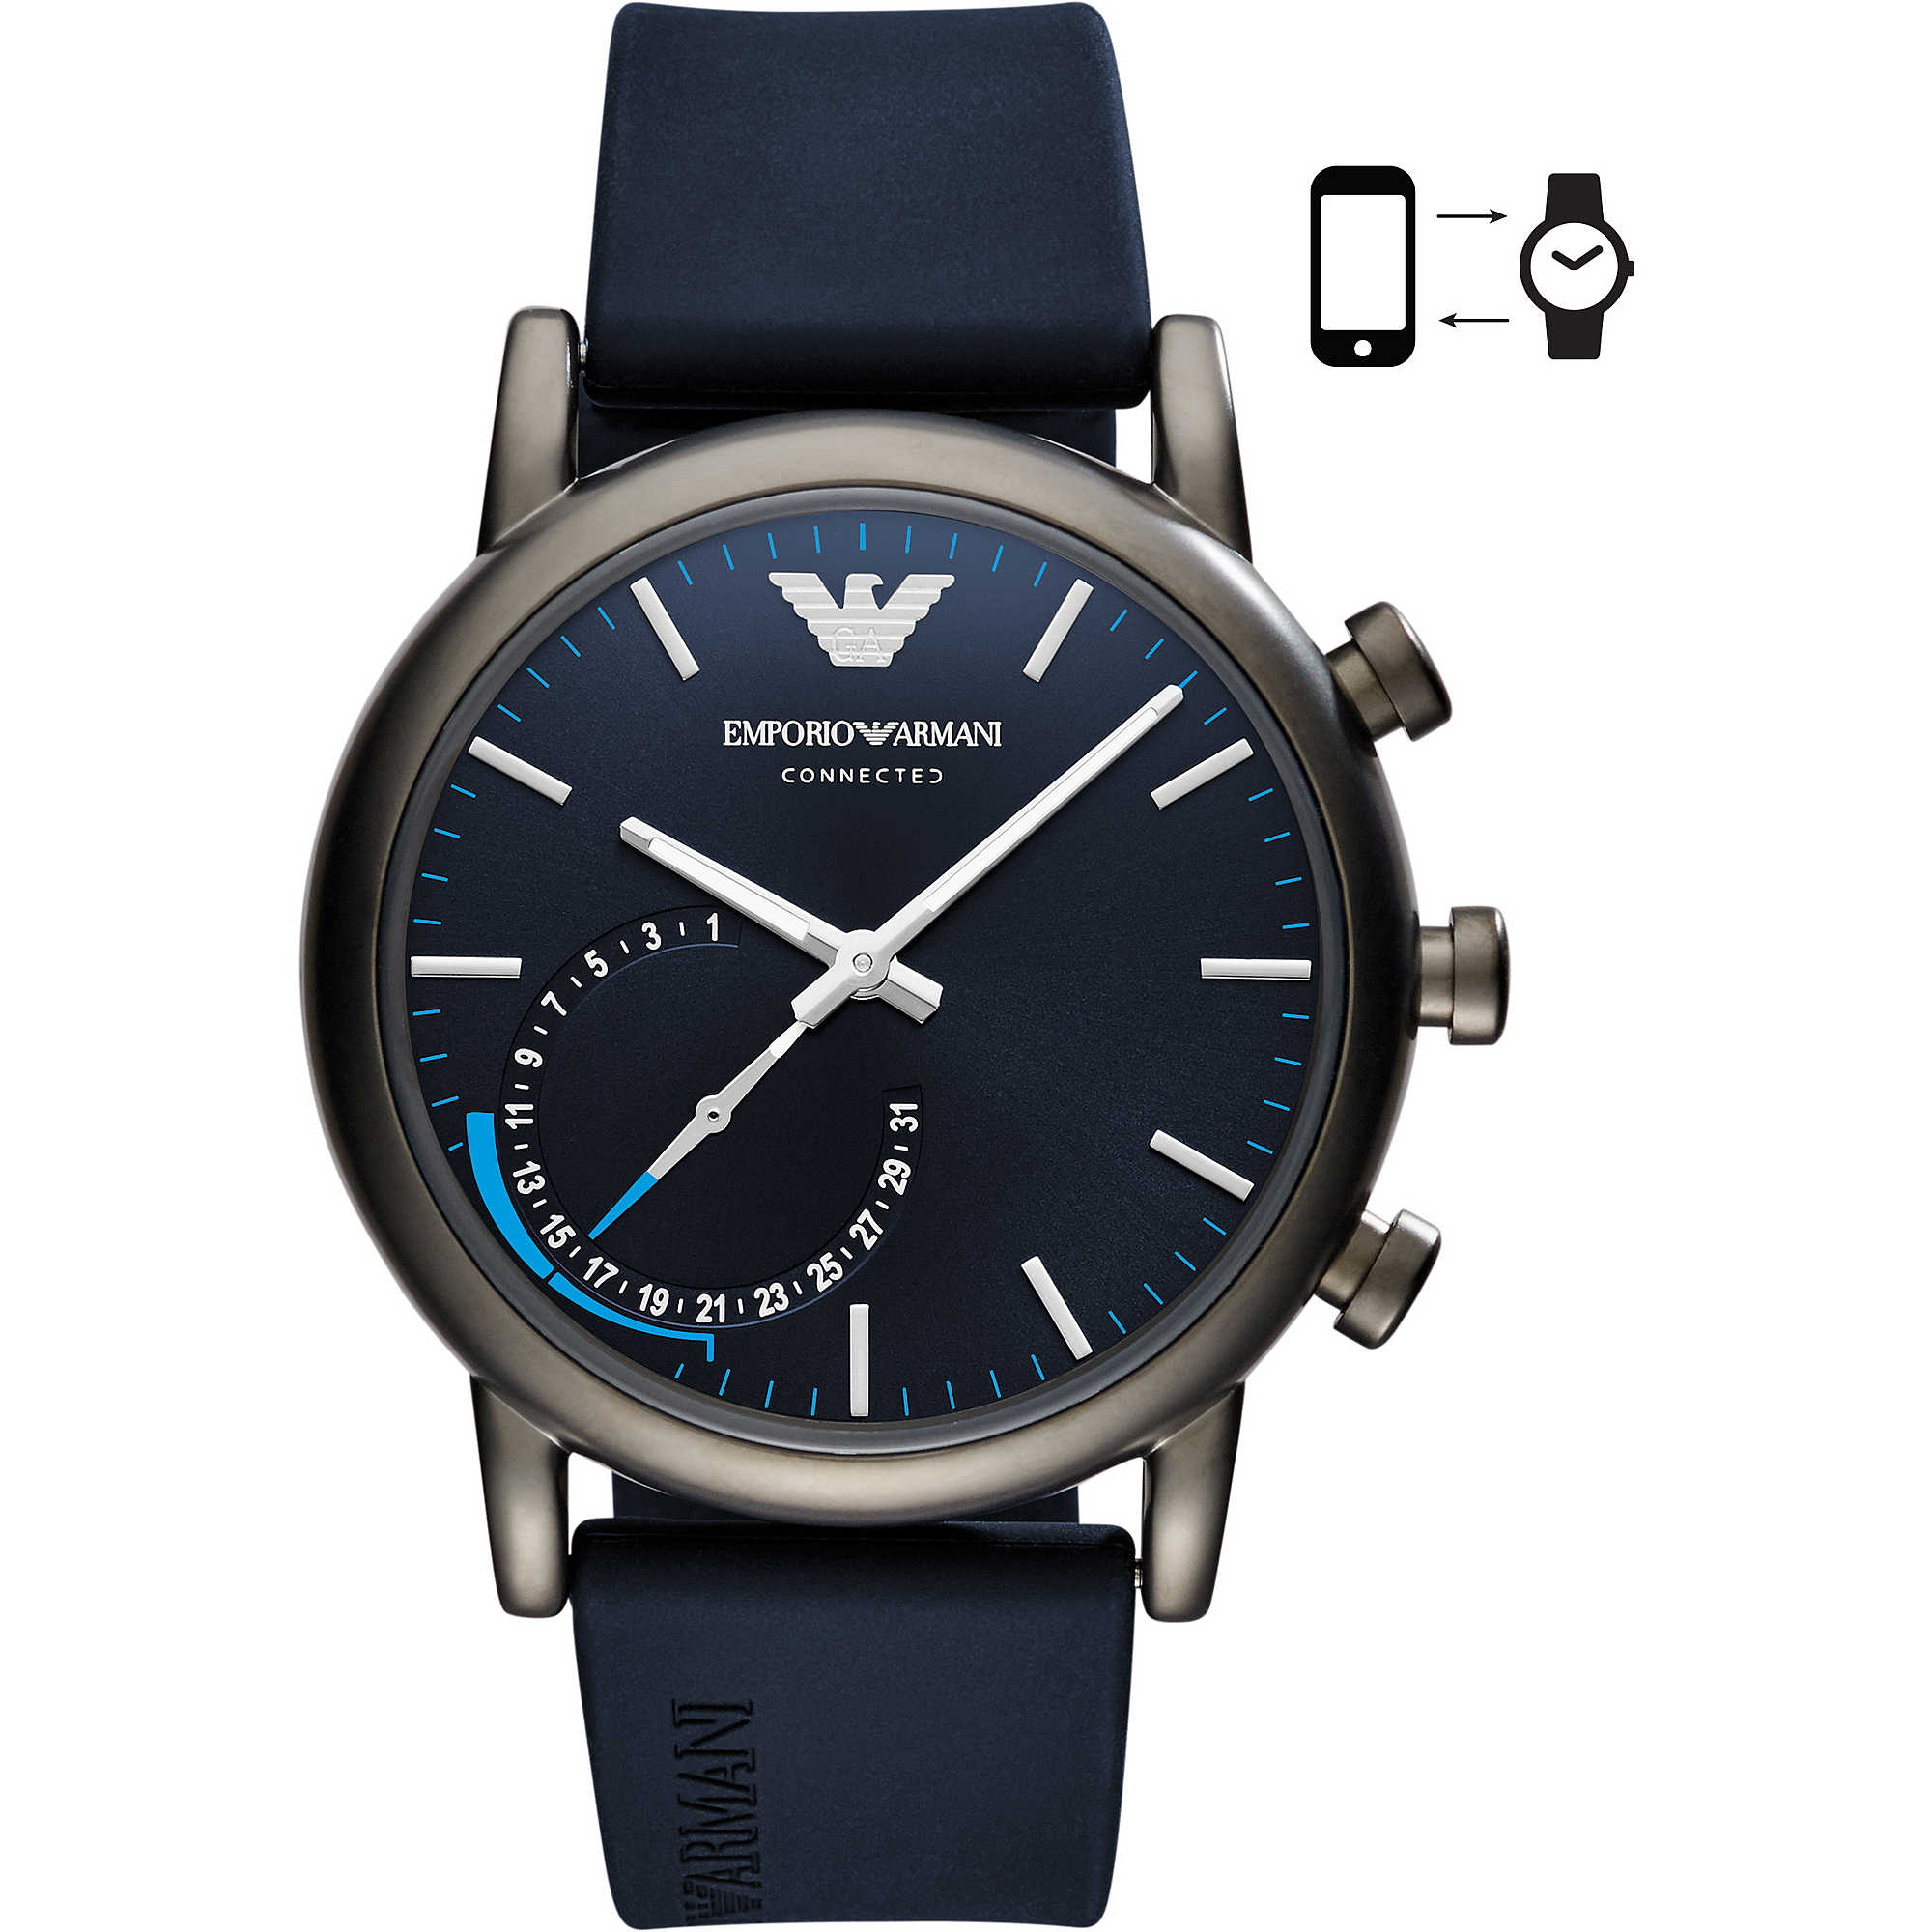 watches the offers and get problem big notification of kind misfit a to than features it still mode around whole thinner is better misfits watch system hybrid new smartwatch attempt predecessor s though its